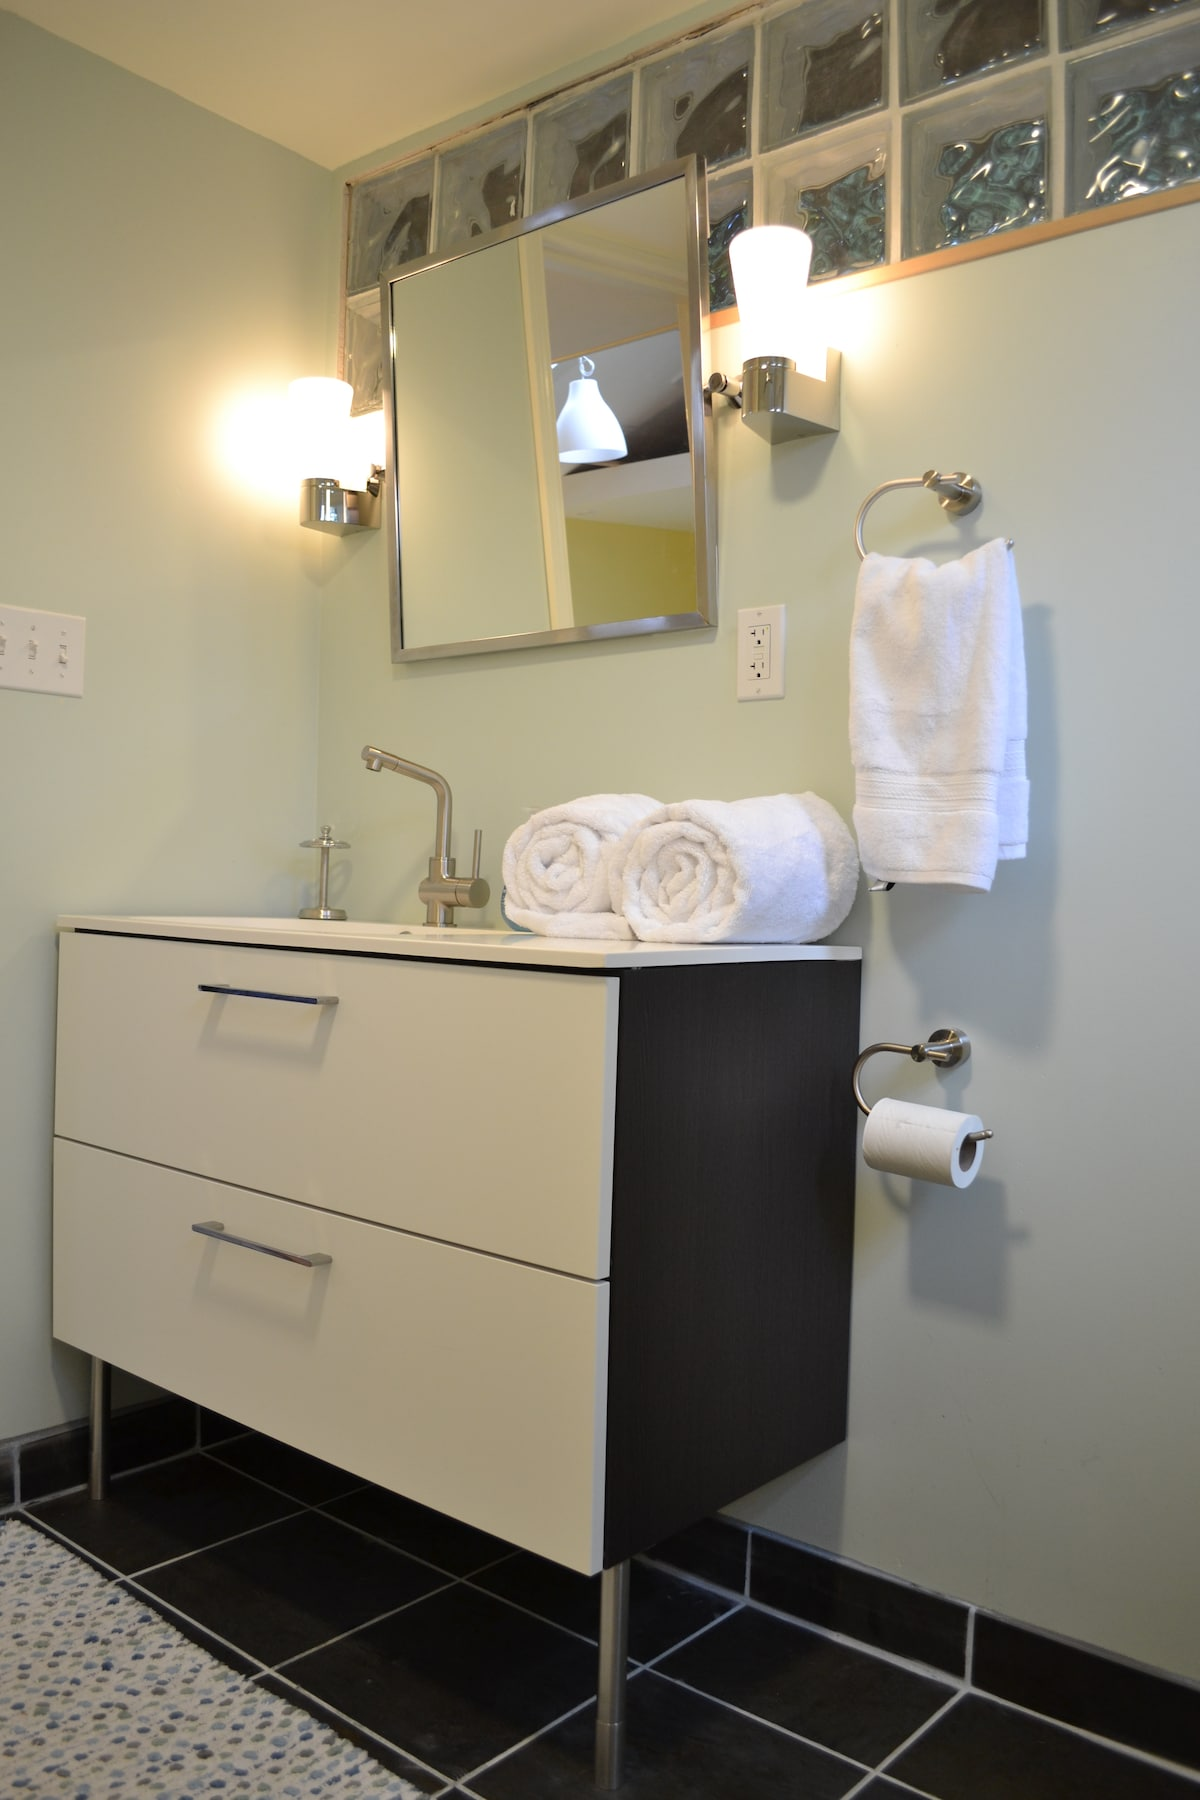 Large bathroom with plenty of hotel-quality towels